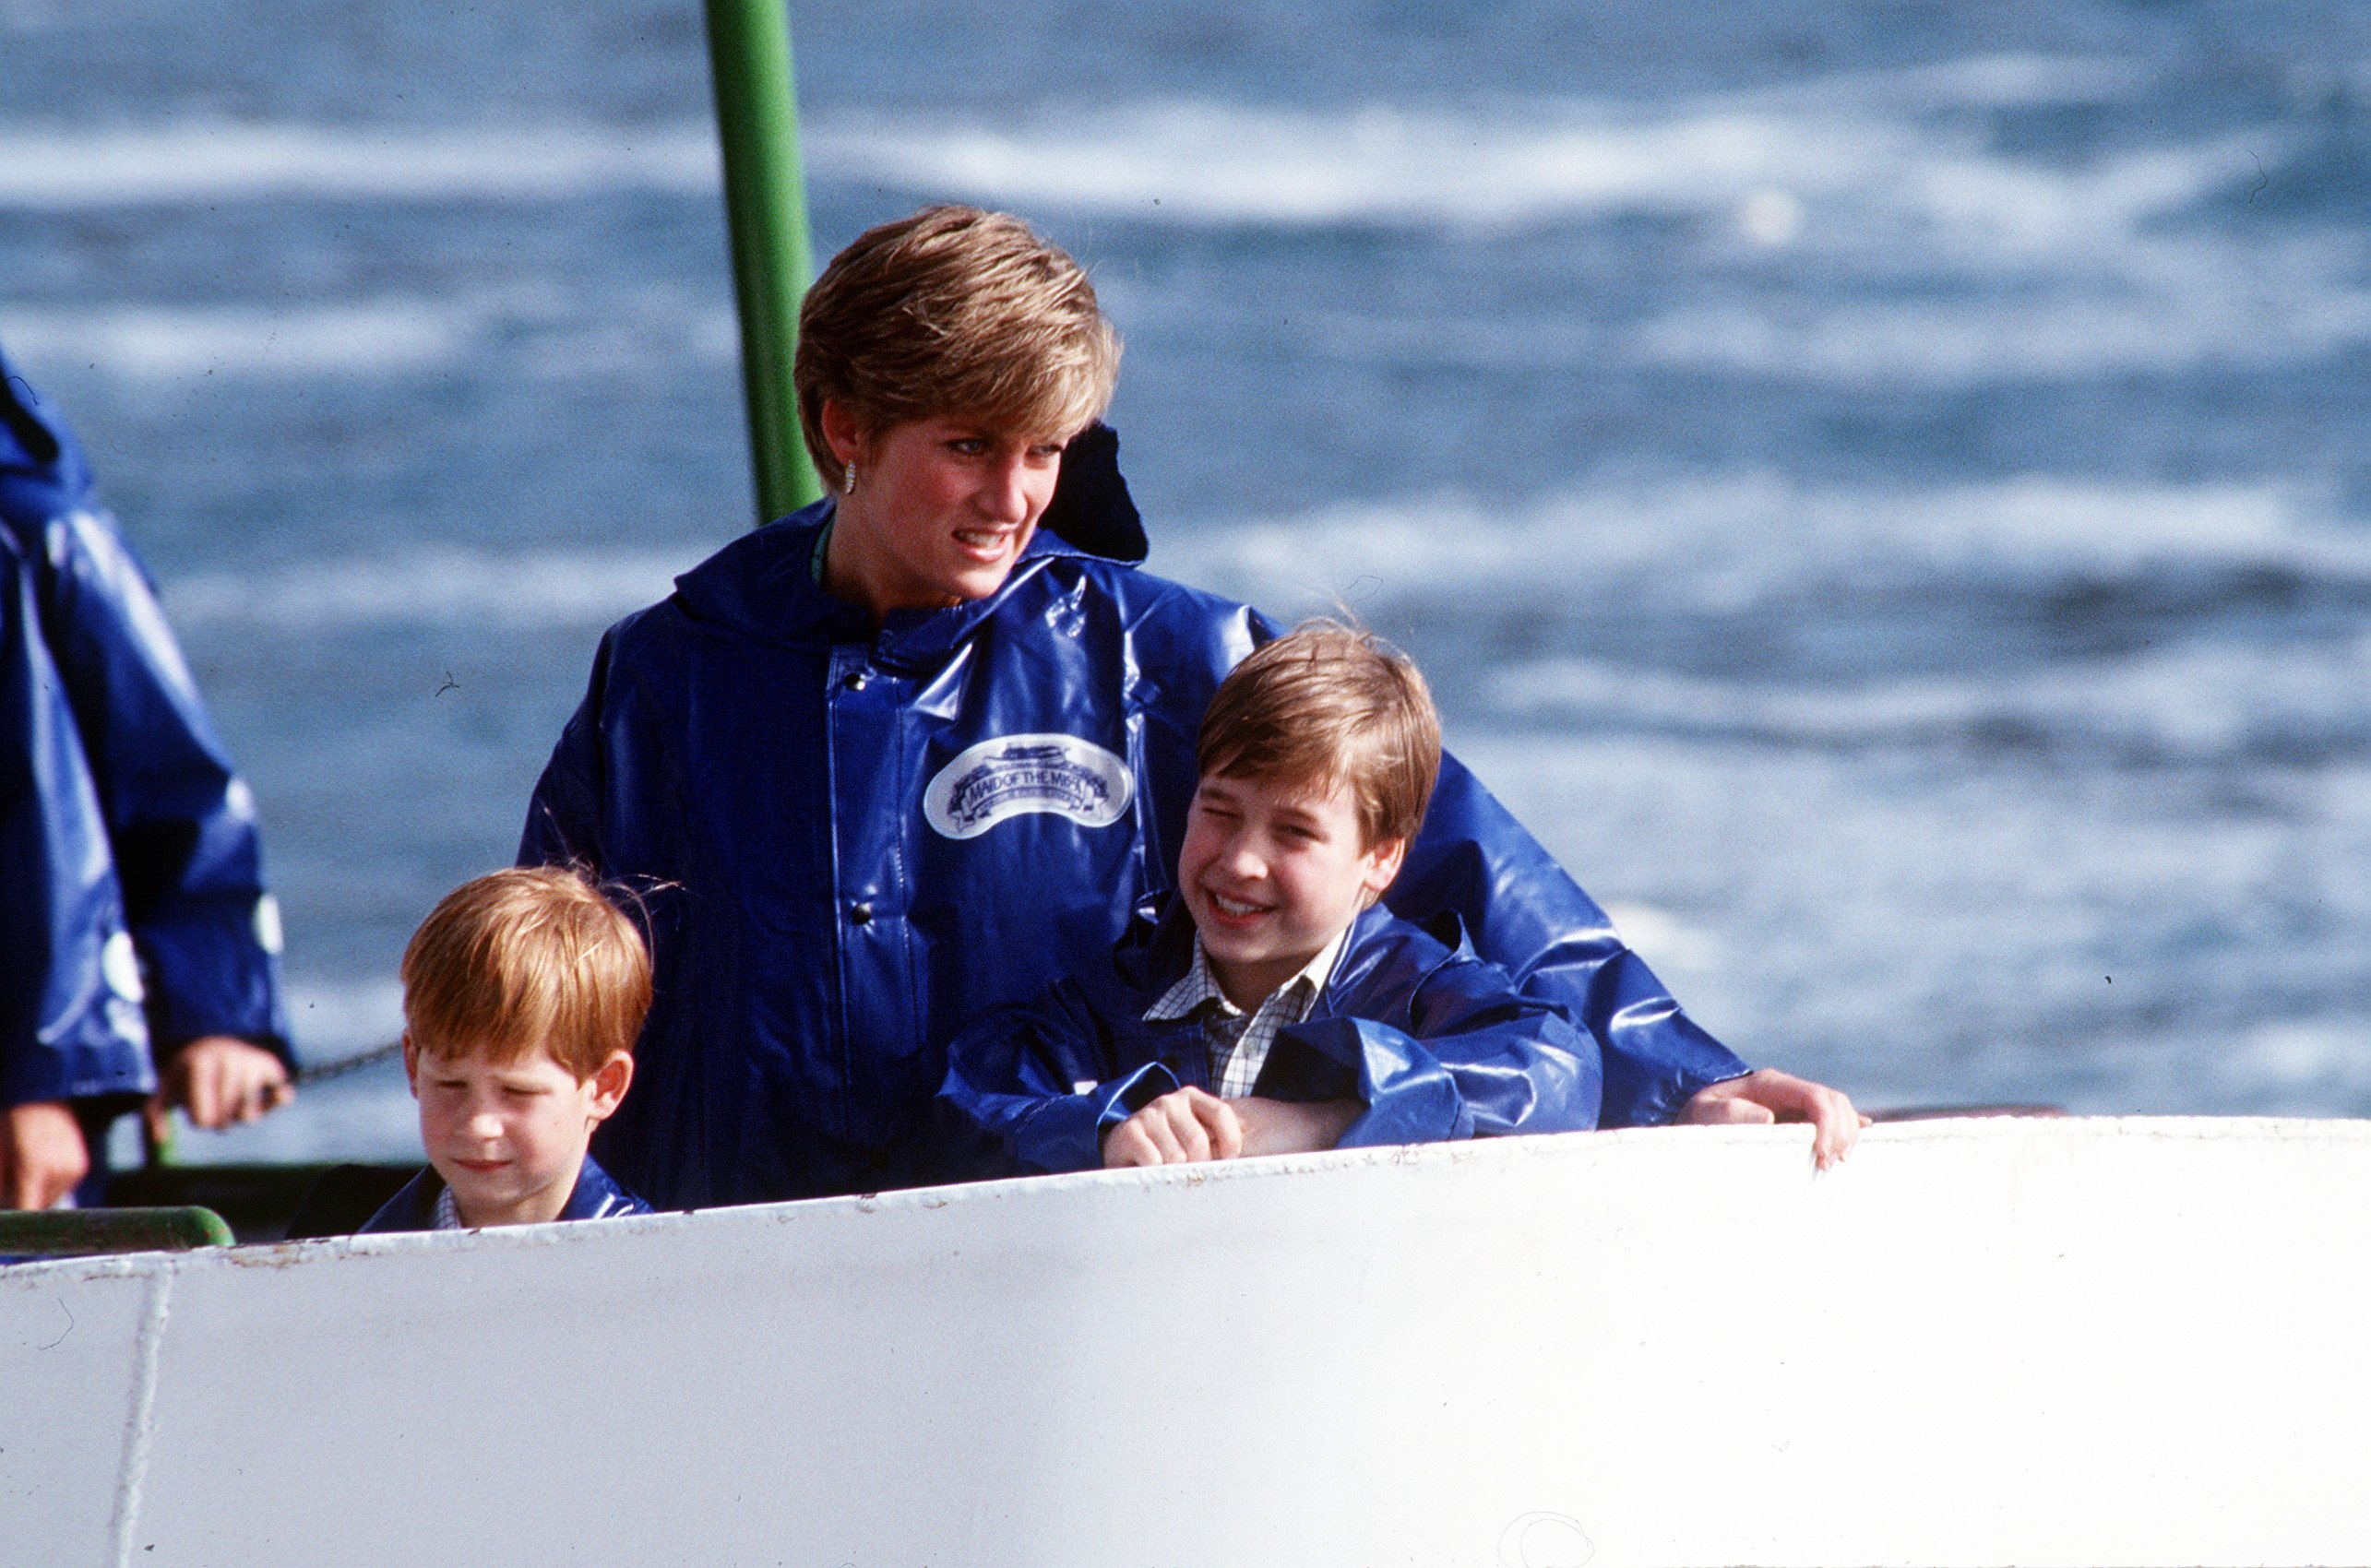 Prinzessin Diana und ihre Kinder | Quelle: Getty Images